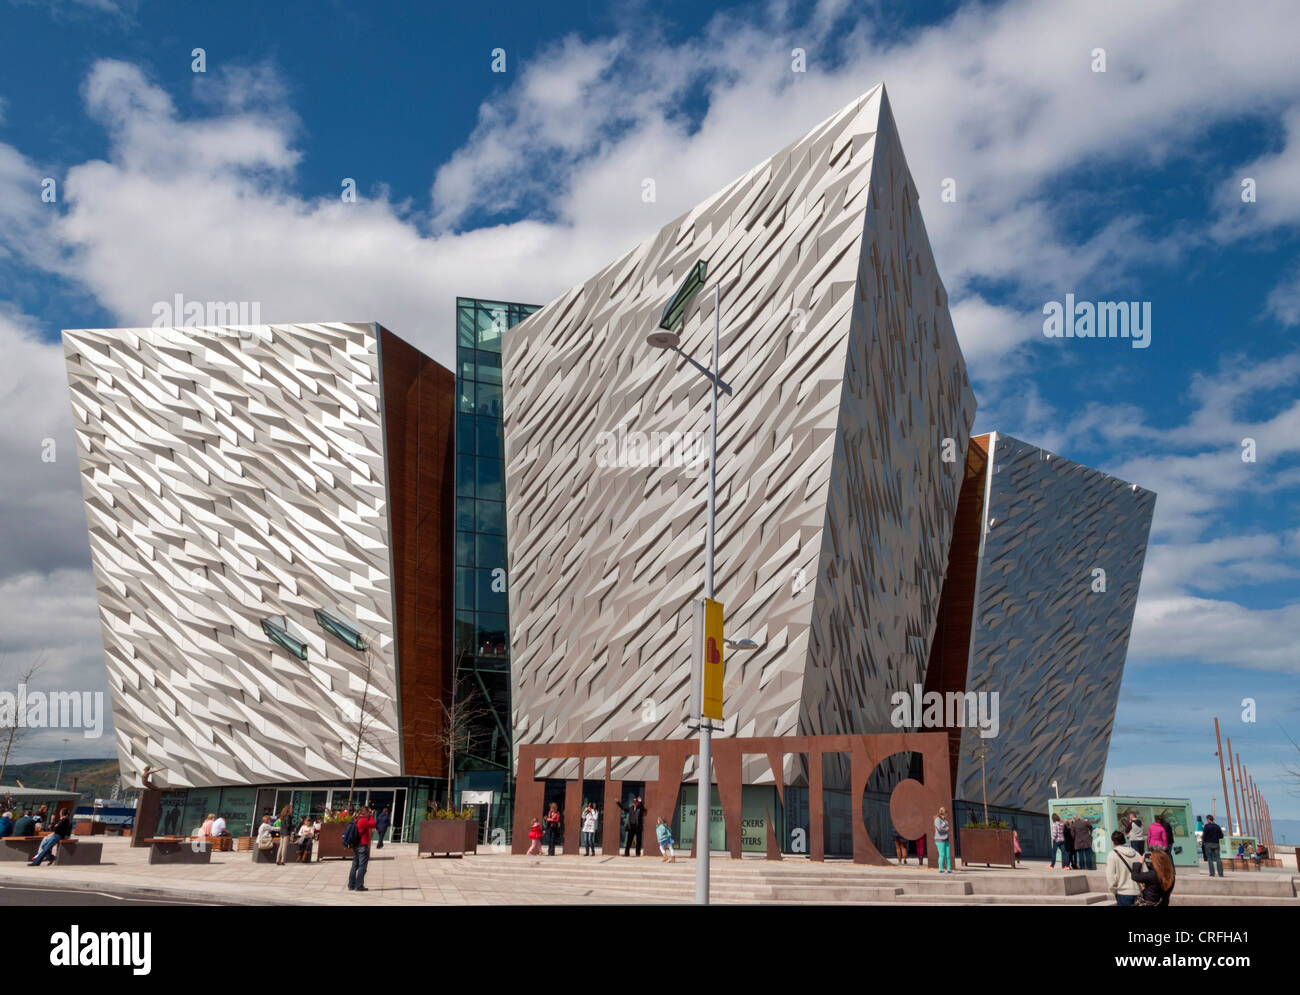 Titanic Centre in Belfast, Northern Ireland - Stock Image